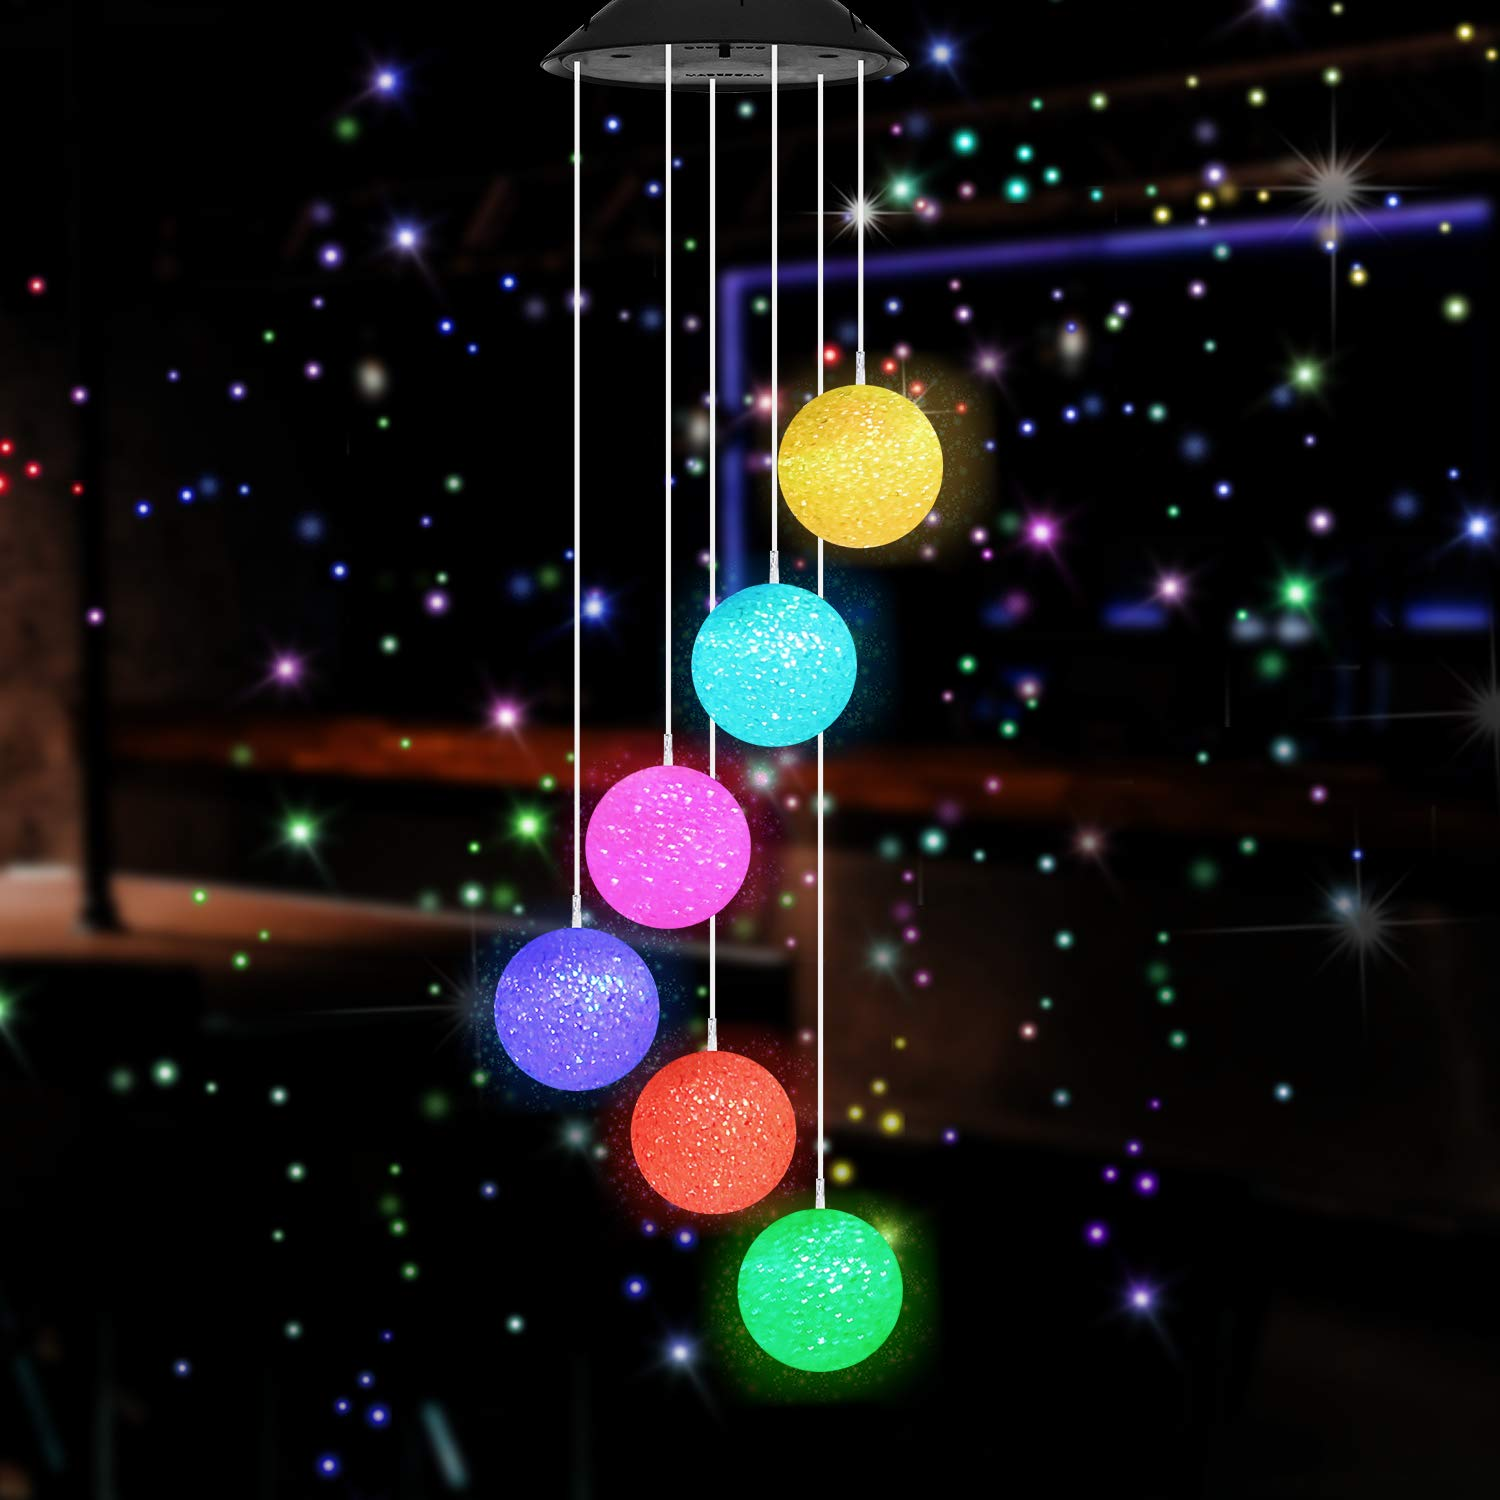 SIEBIRD Crystal Ball Solar Wind Chimes Outdoor Color Changing Mobile Romantic Wind Chime Light for Home Patio Yard Garden Decor Waterproof LED Solar Powered Wind Chimes Lights Garden Hanging Lamp